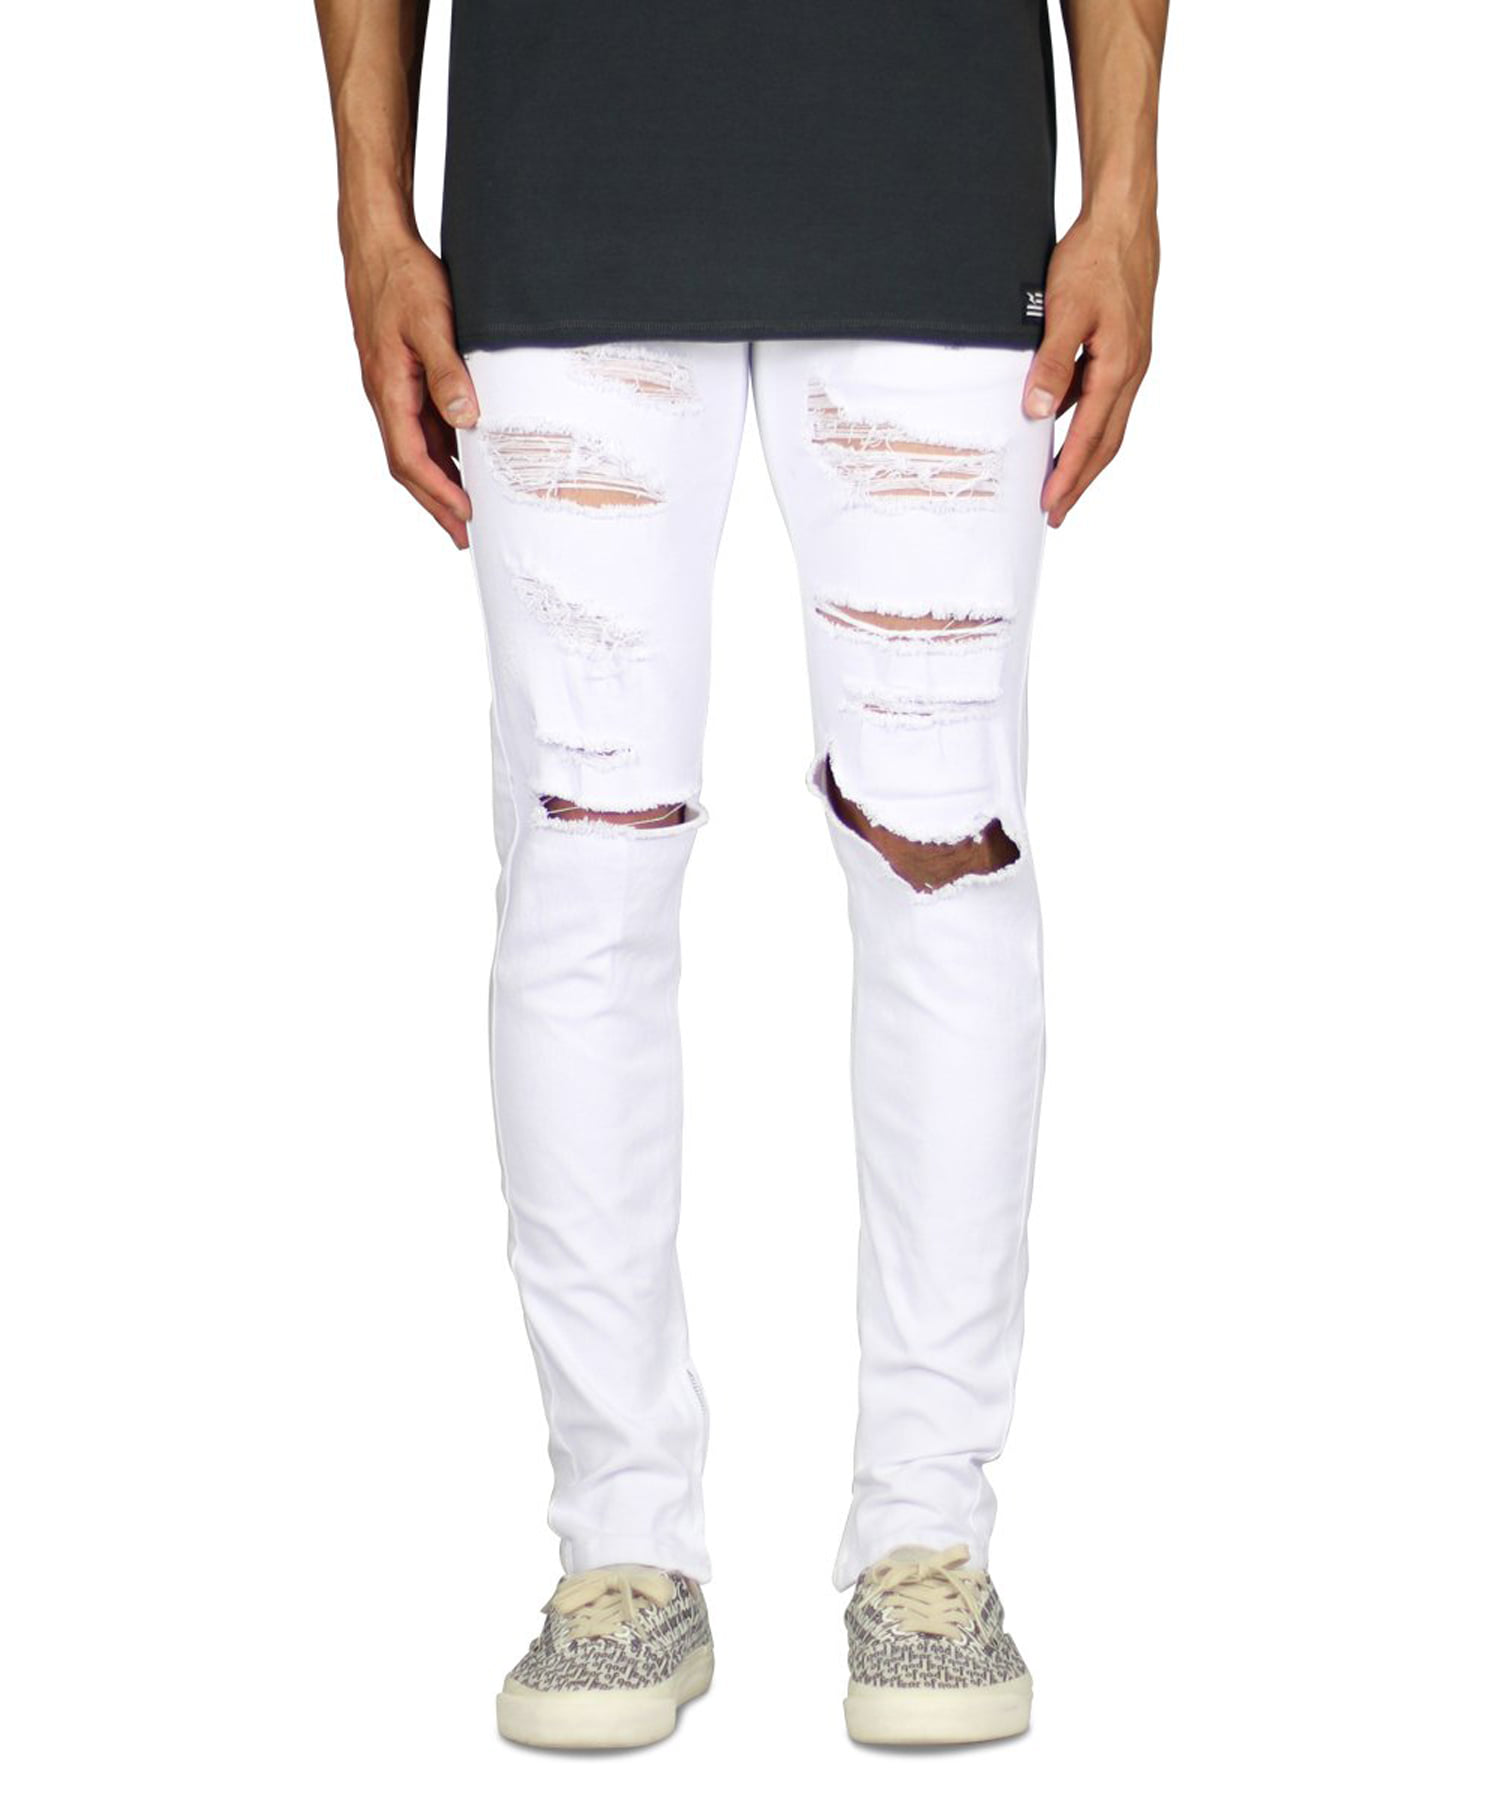 White Ato Zipper Pant